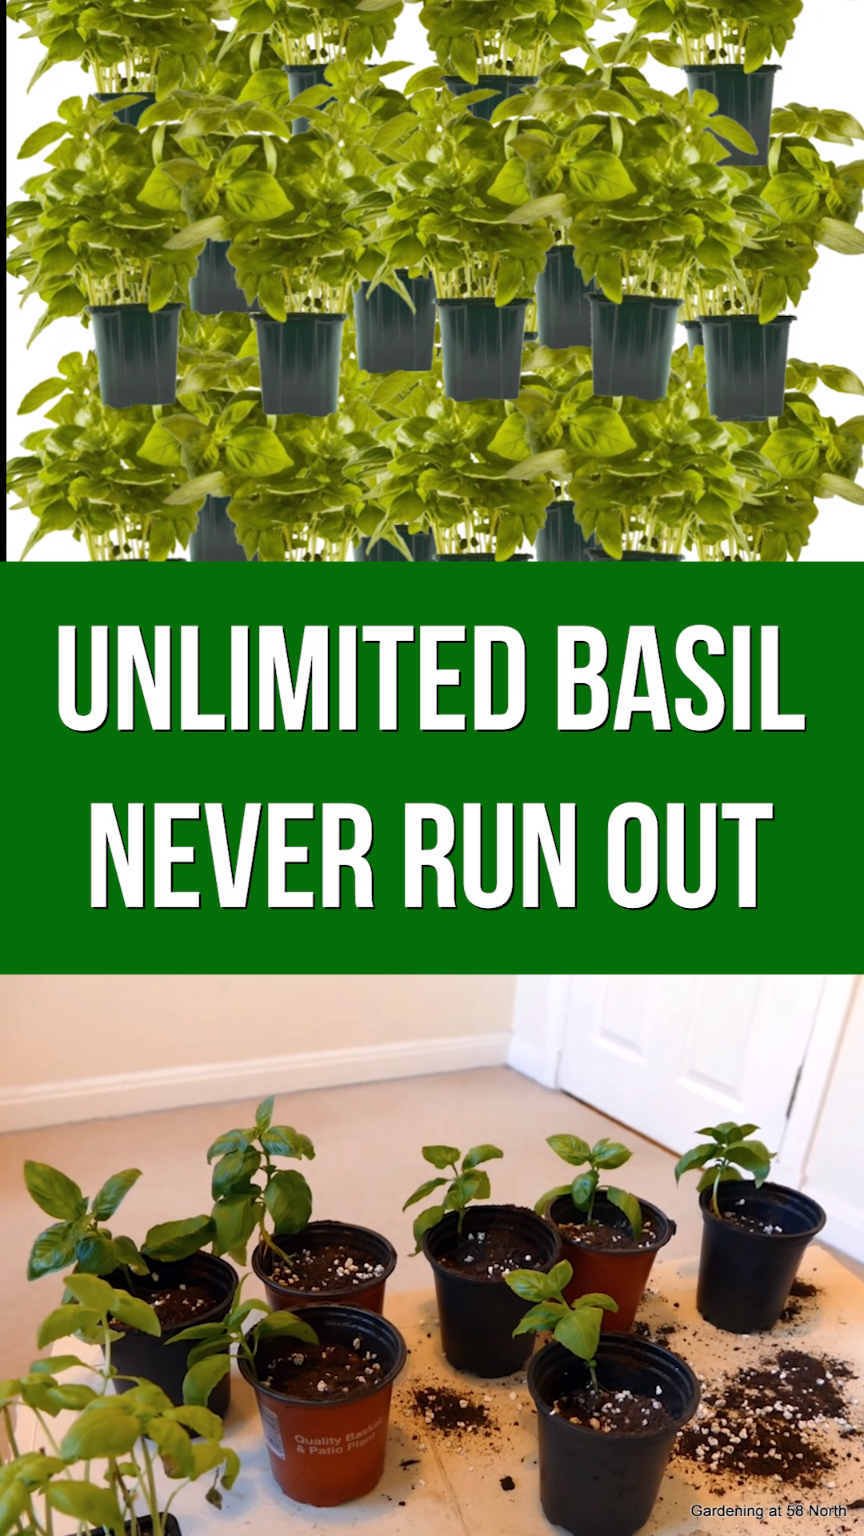 Grow Unlimited Basil At Home In 60 Days is part of Outdoor herb garden, Basil plant indoors, Indoor vegetable gardening, Container gardening vegetables, Planting herbs, Planting vegetables - In just 60 days you can turn 1 basil plant from the supermarket into 12! Keep the process going to make unlimited basil and have pesto every single day! Buy basil in a plant with roots